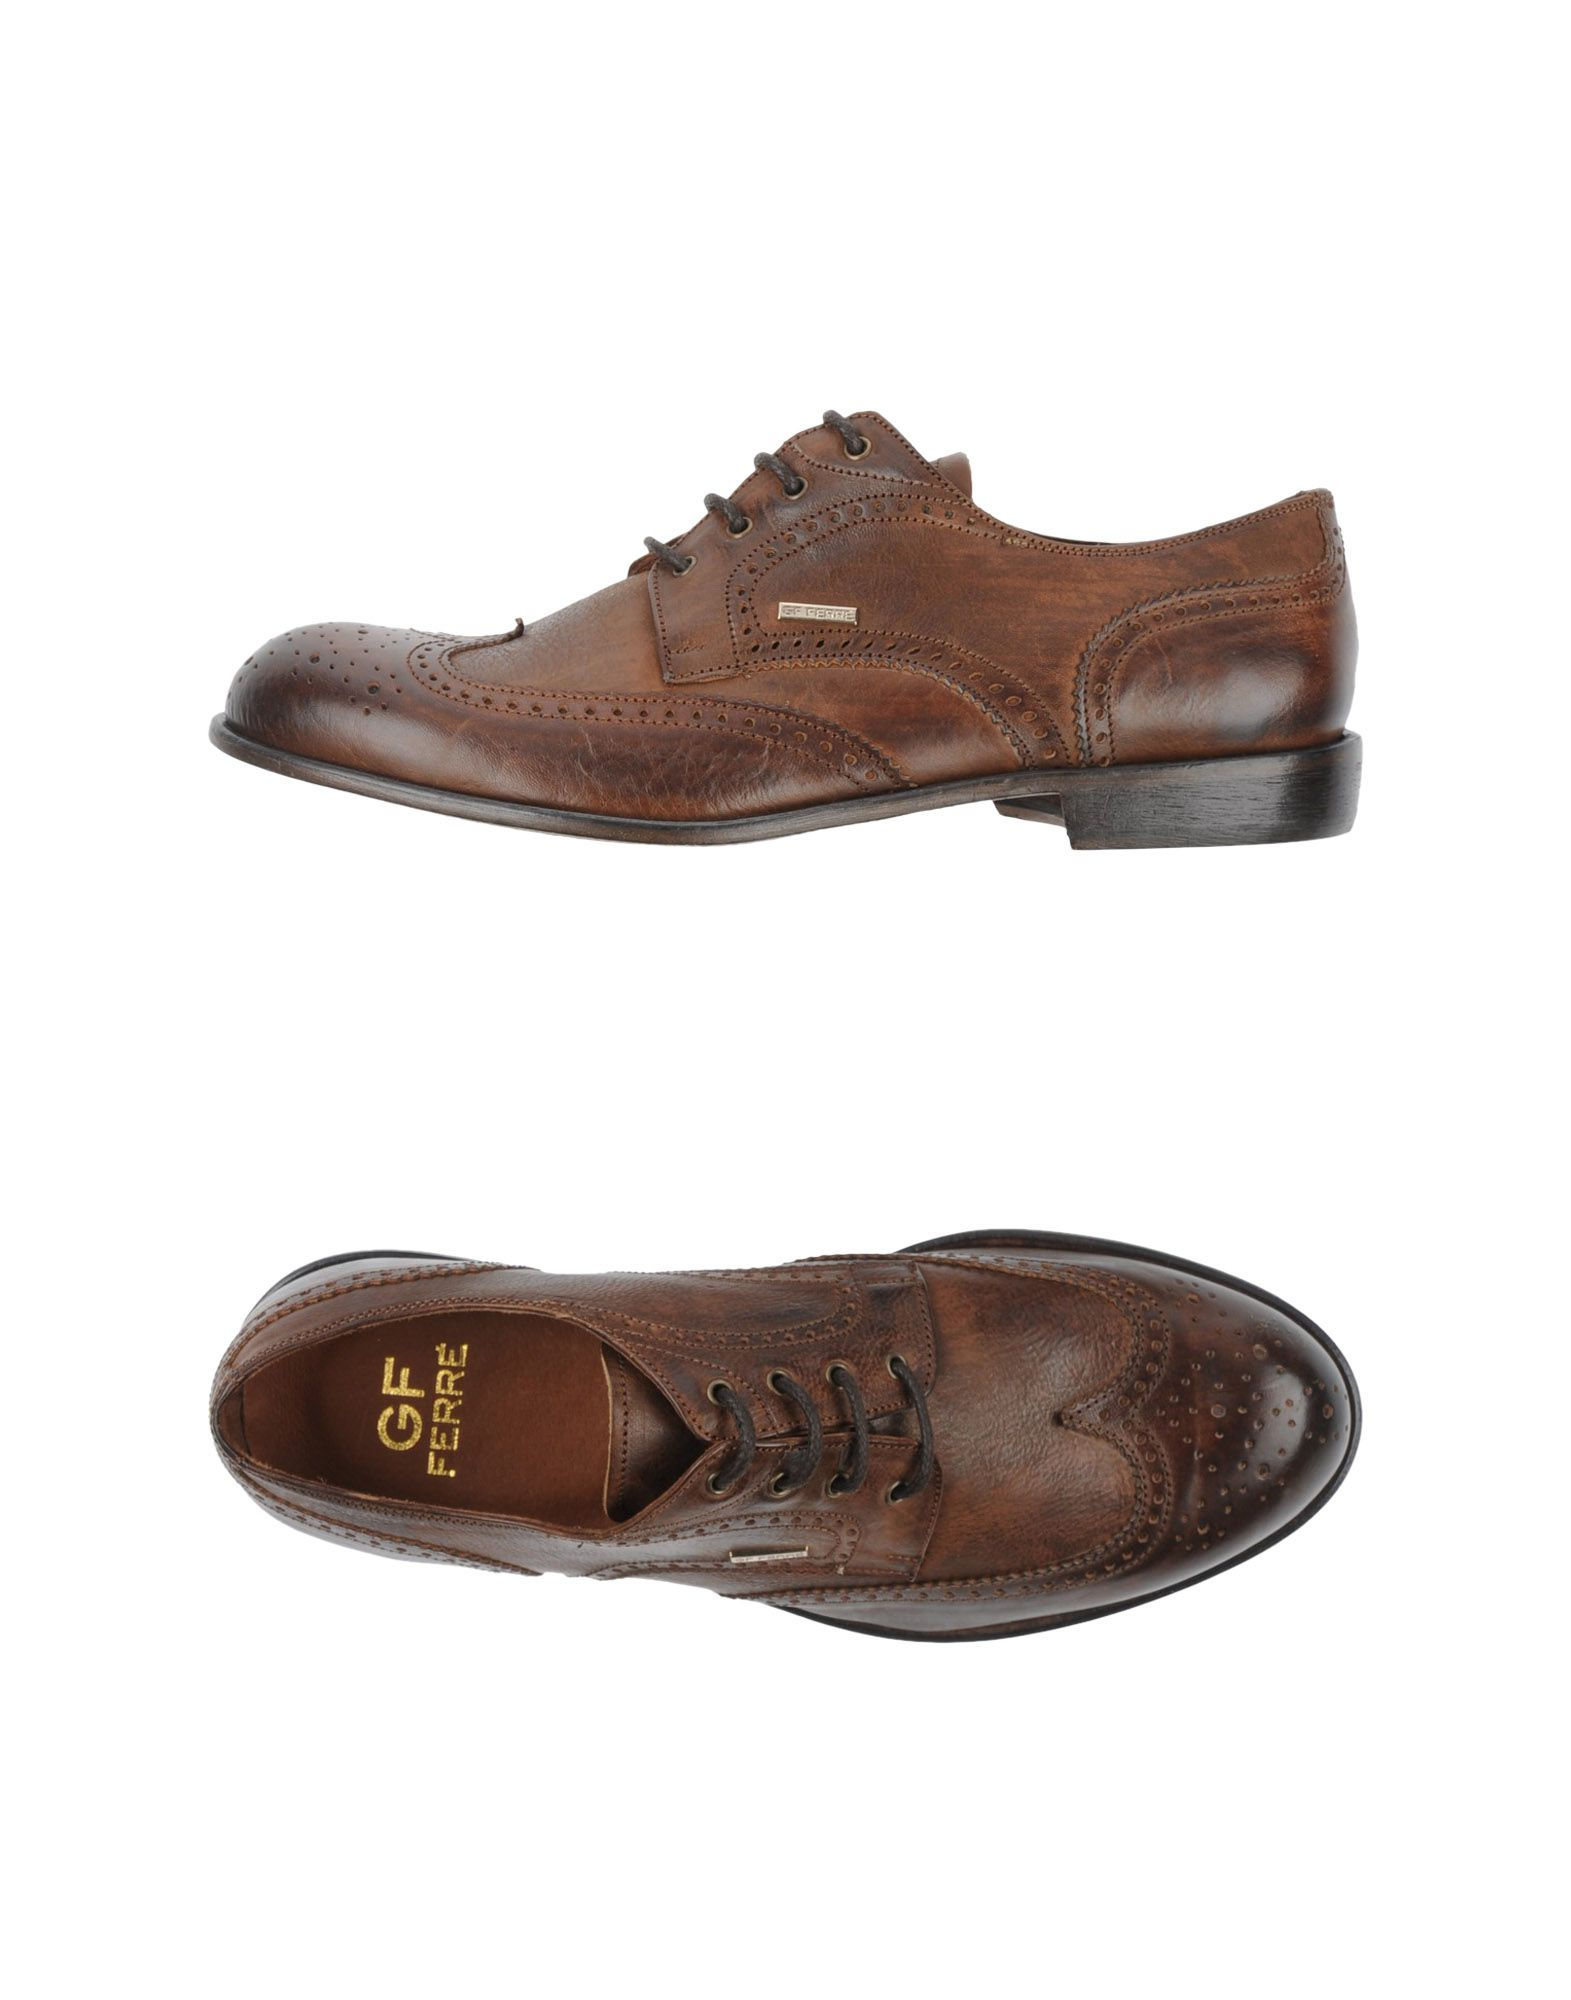 gianfranco ferr 233 laceup shoes in brown for lyst